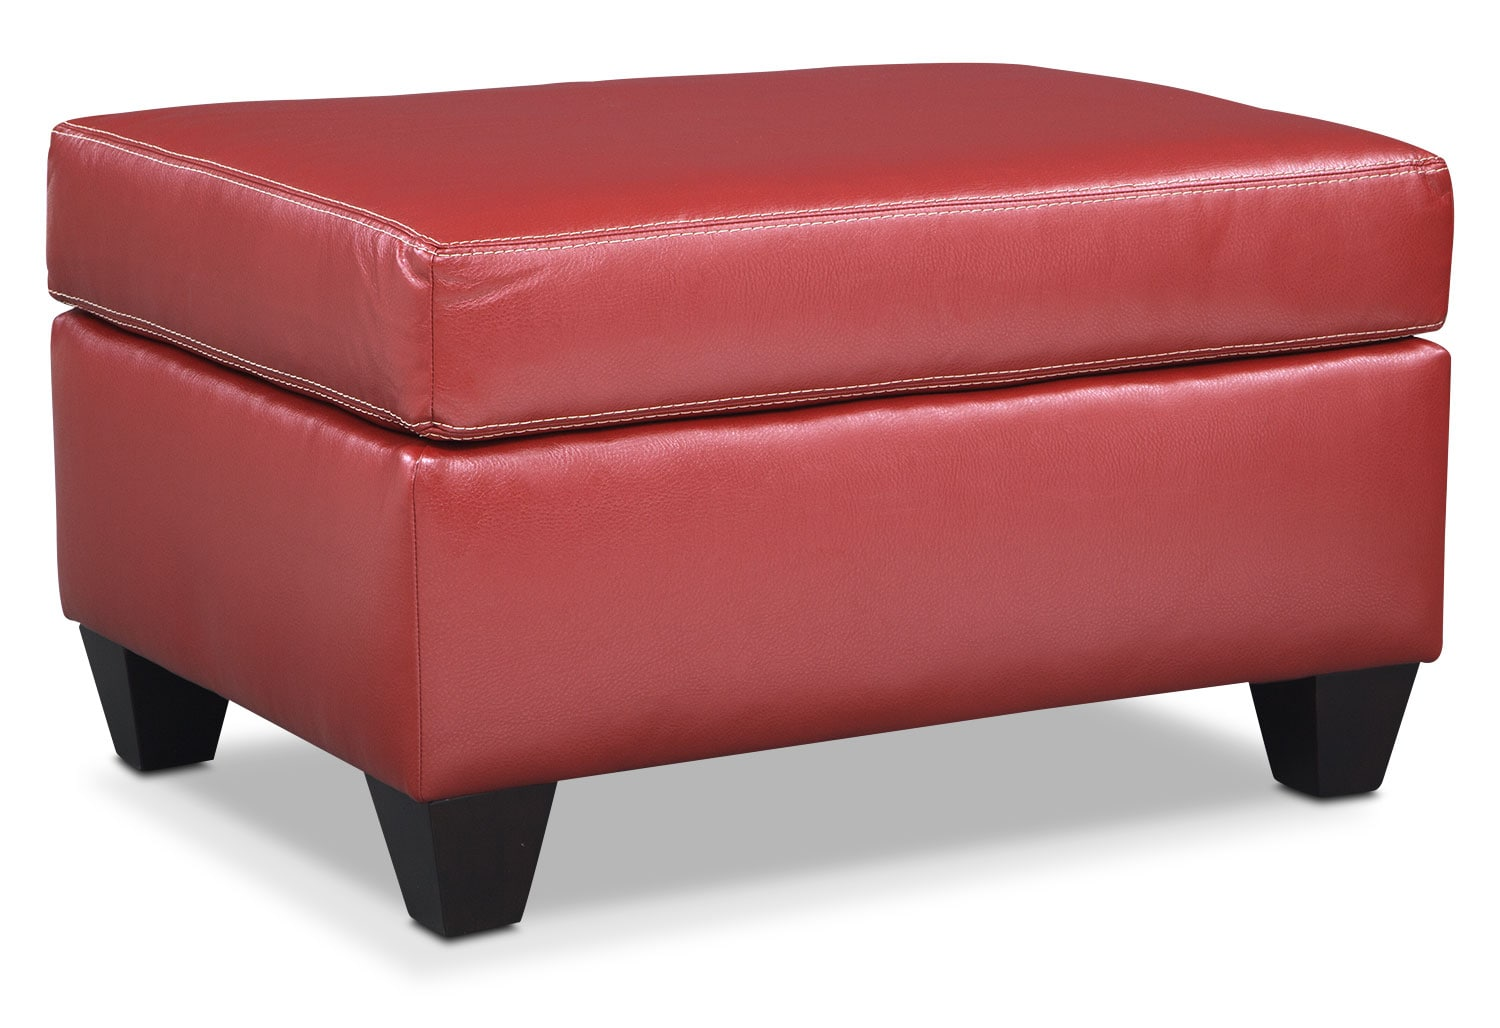 Living Room Furniture - Rialto Cardinal Ottoman